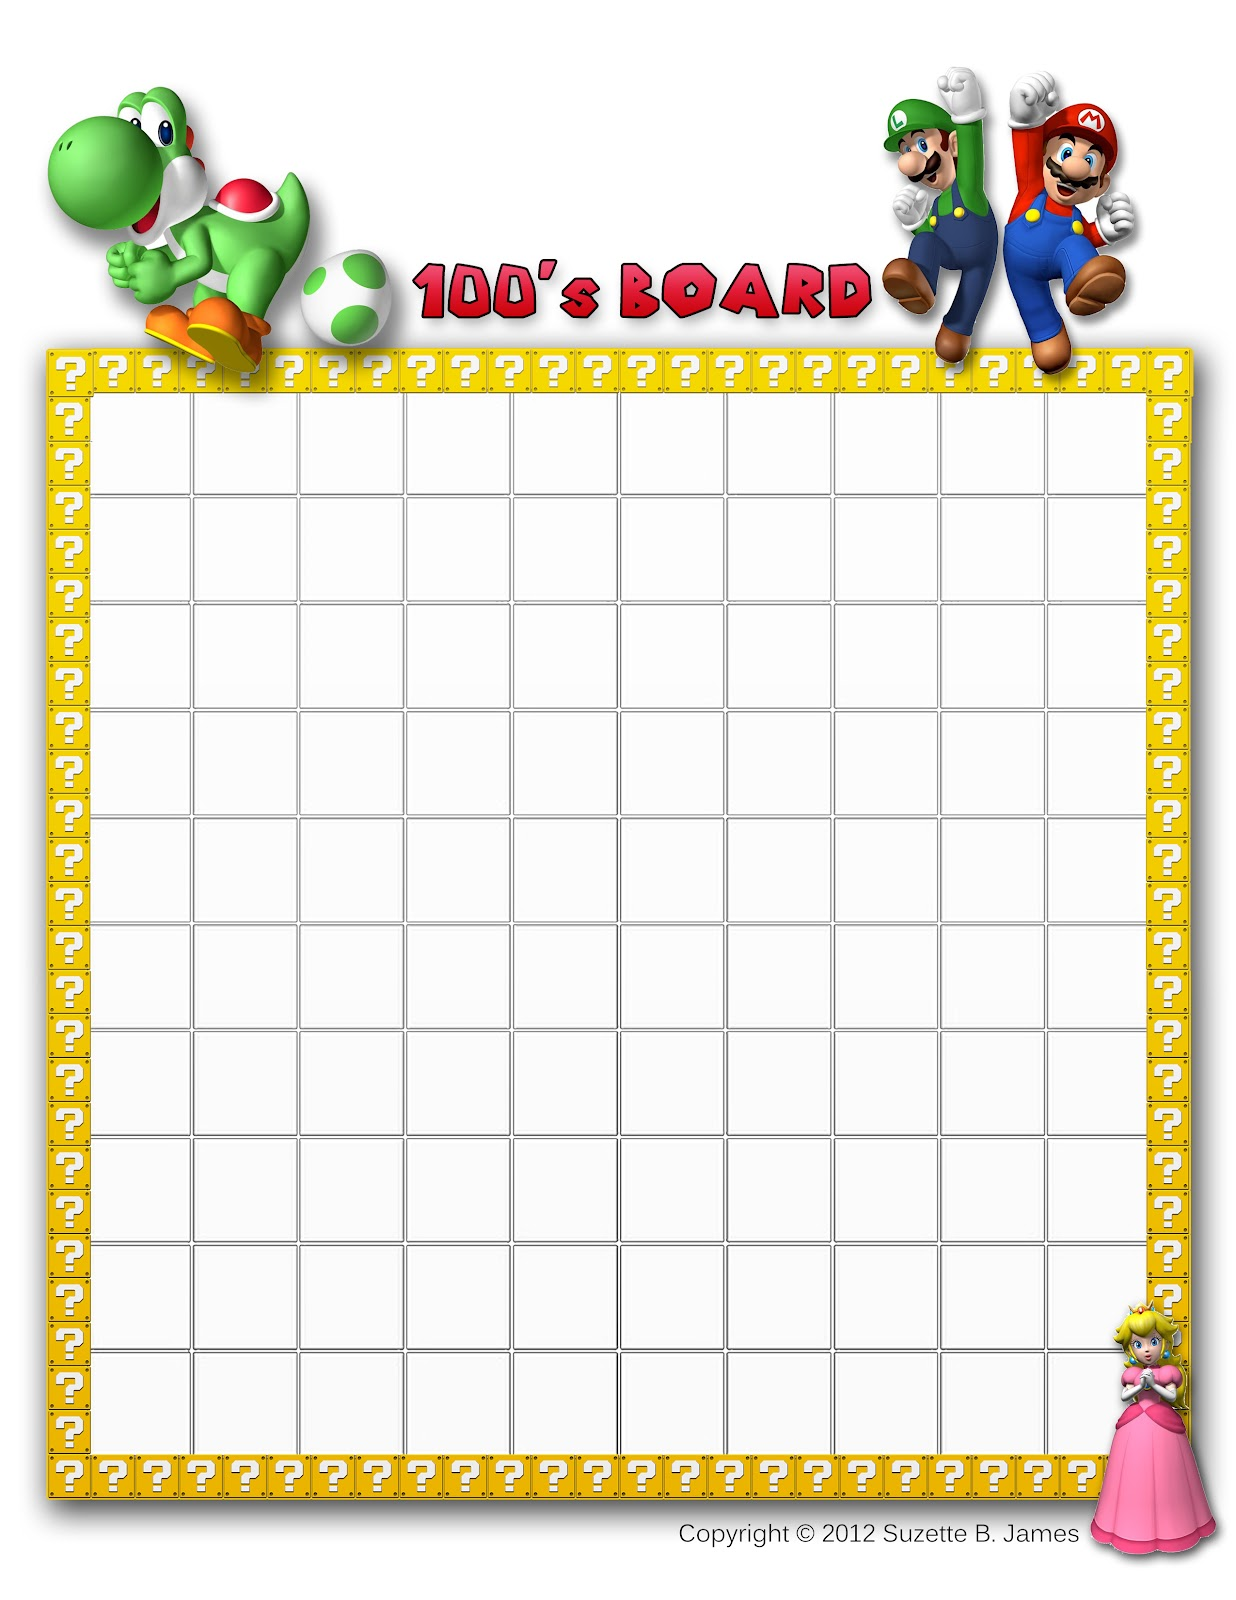 Hundreds Chart Printable   Search Results   Calendar 2015